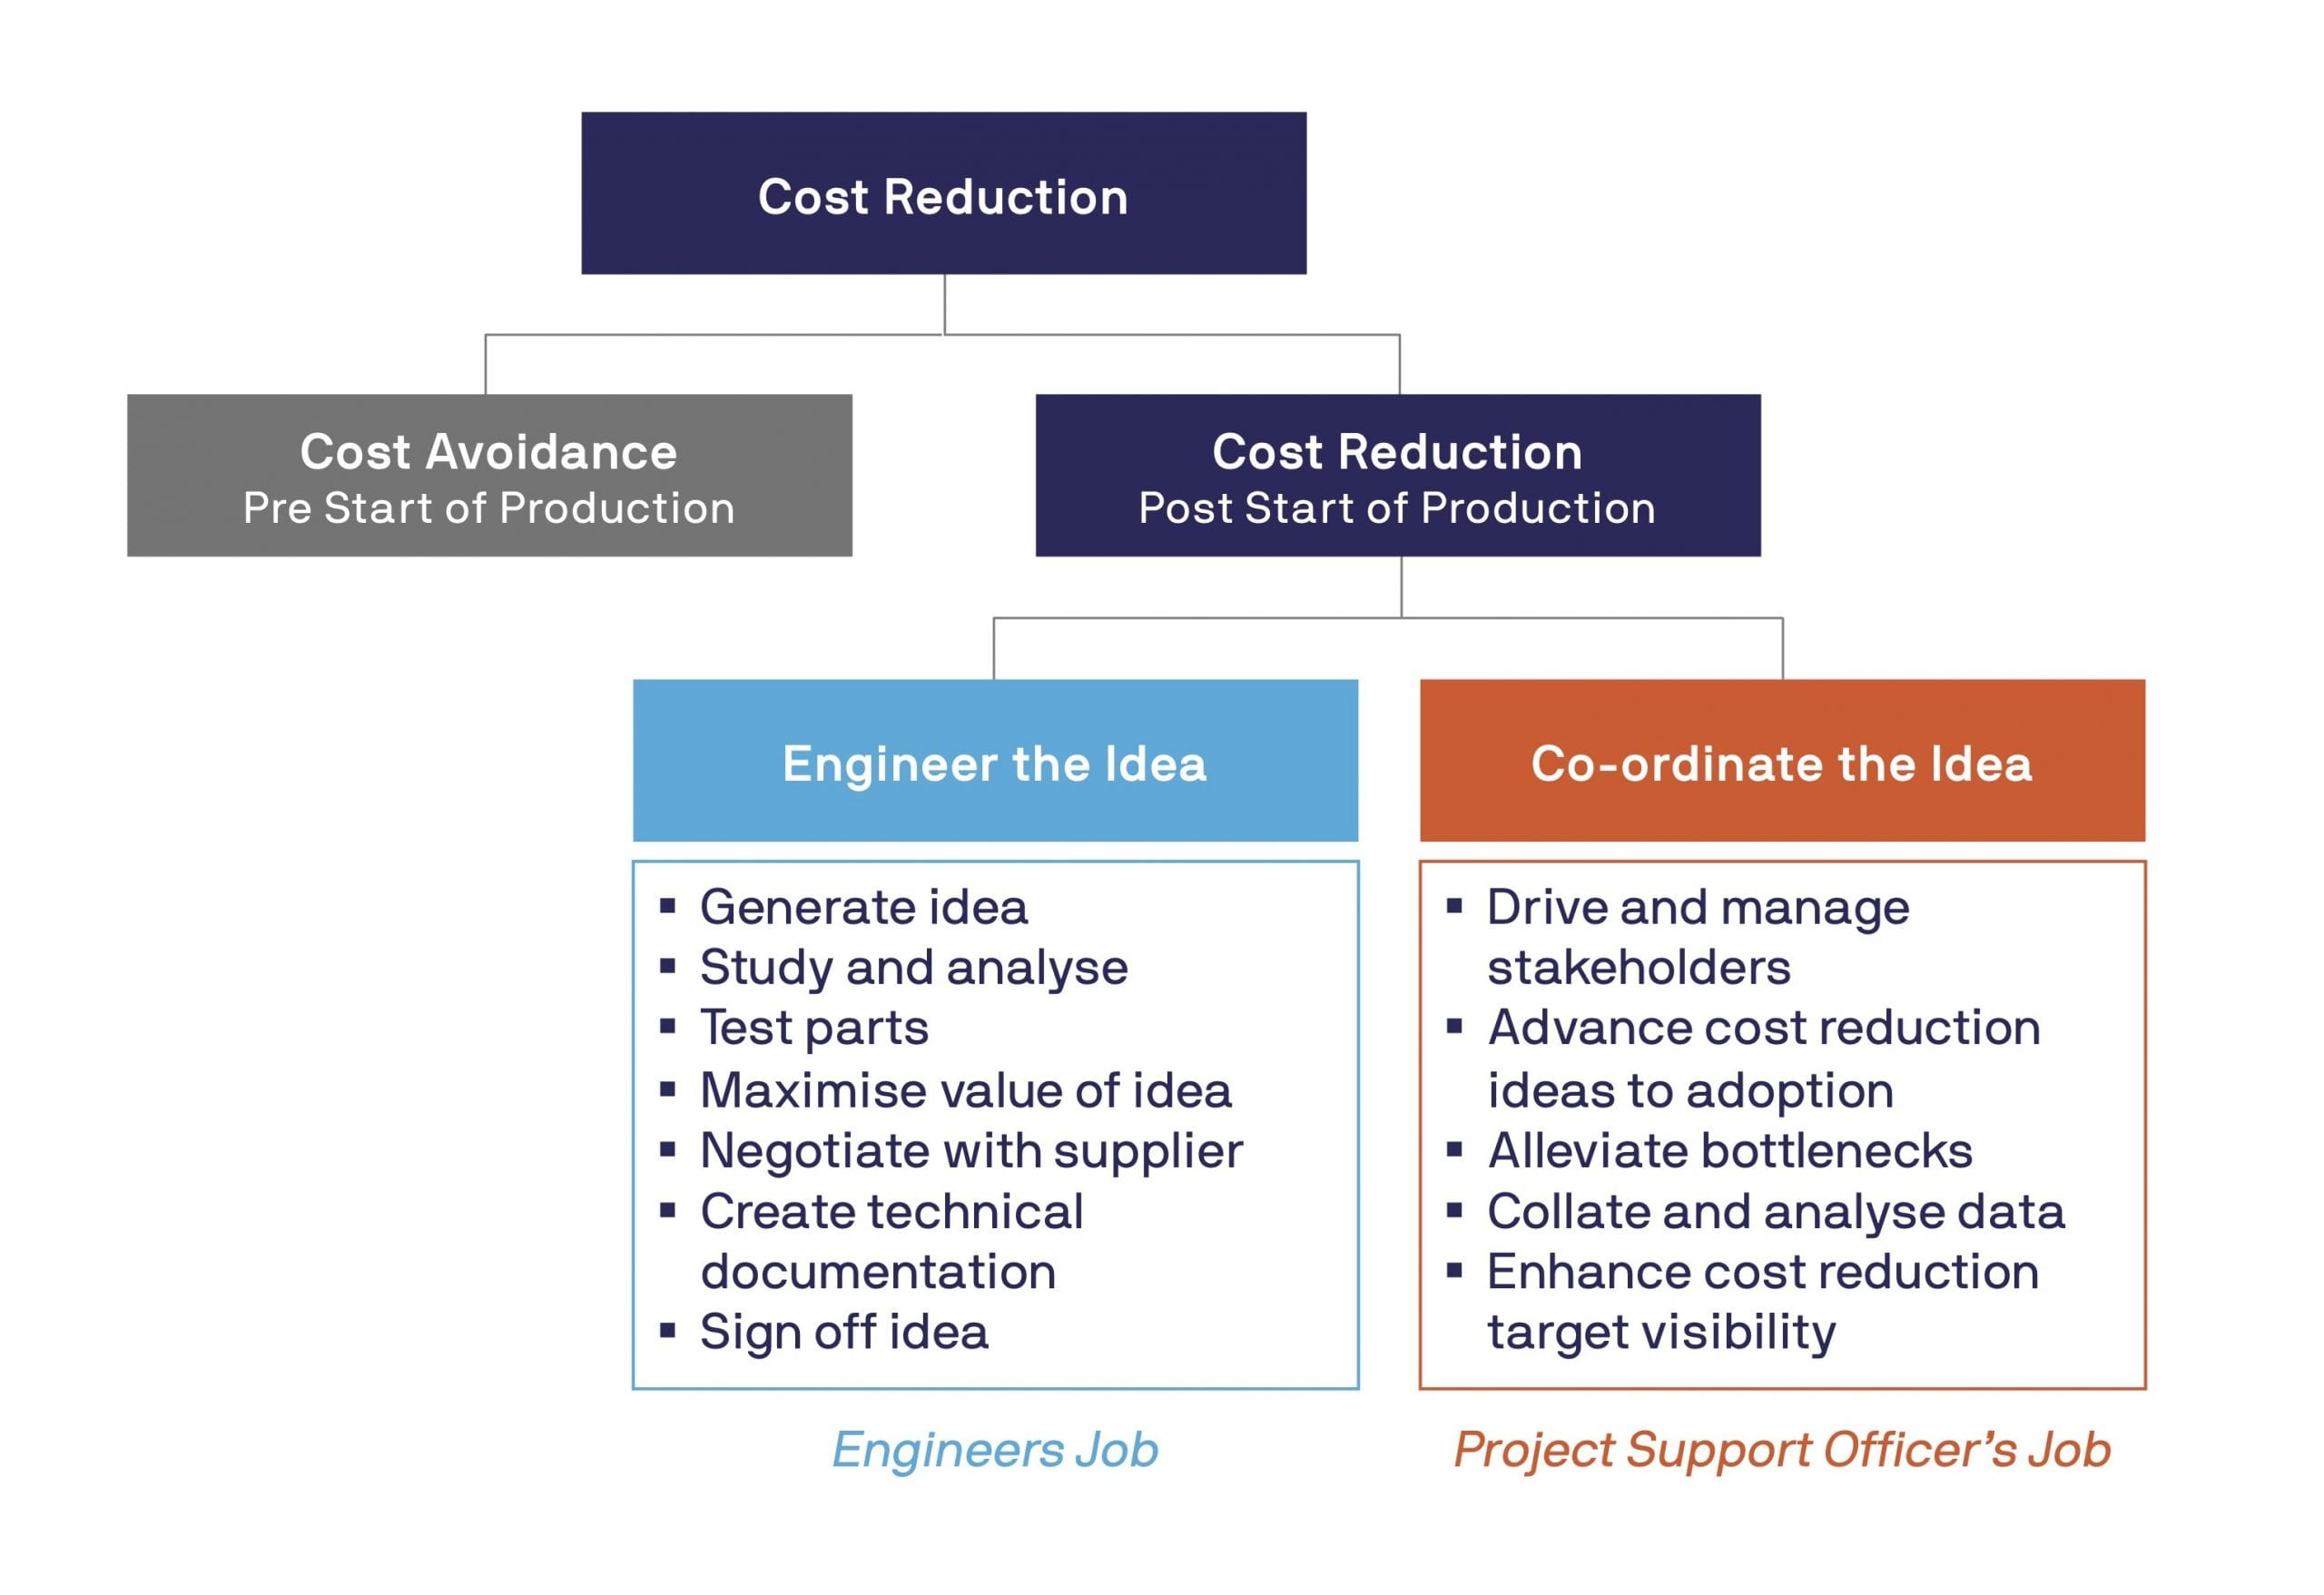 Engineer and Project Support Team roles